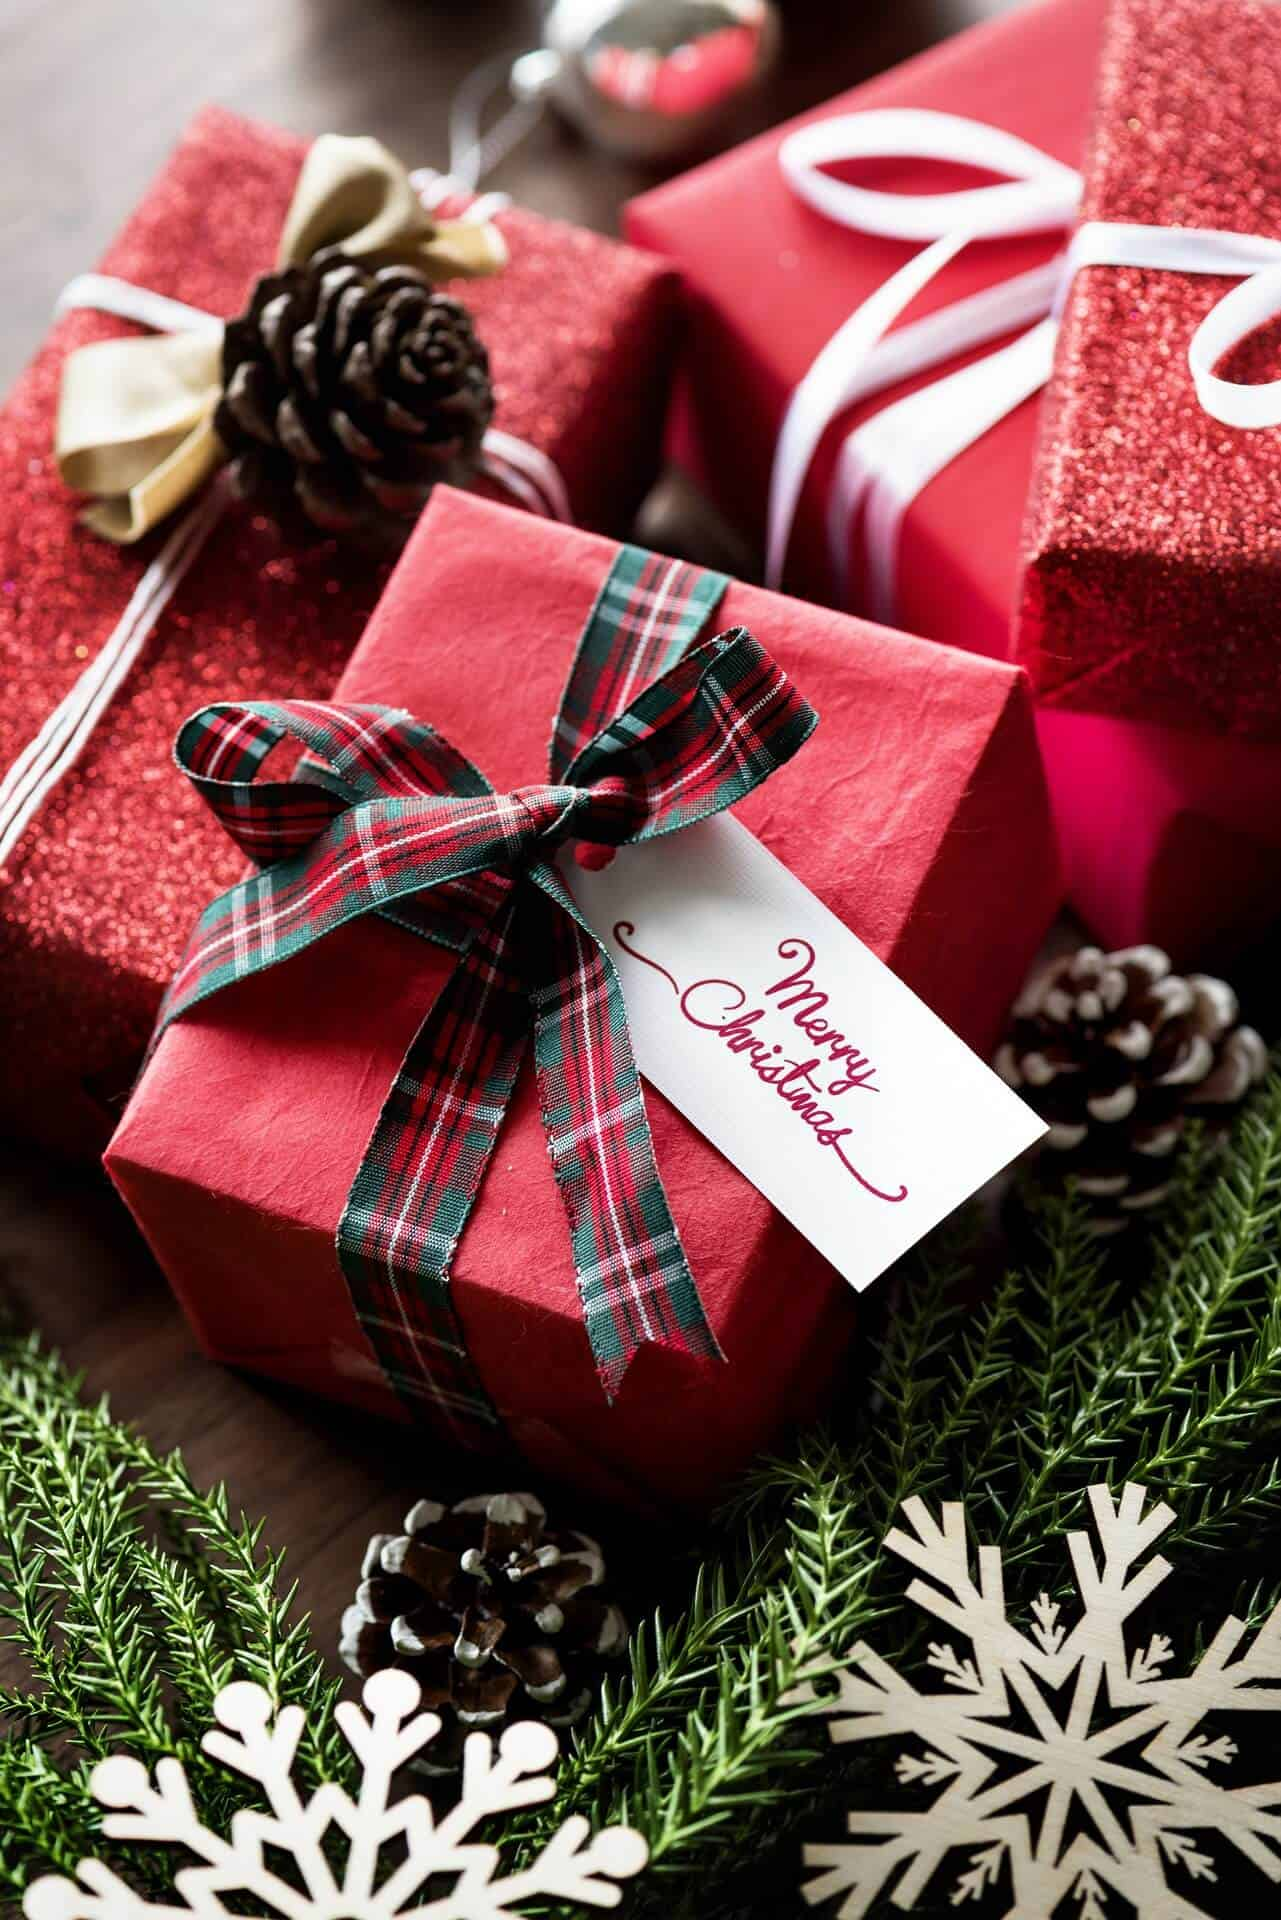 Gift Ideas For the Last Minute Shopper #saveeandsavory #giftideas #christmasgifts #lastminuteshopping